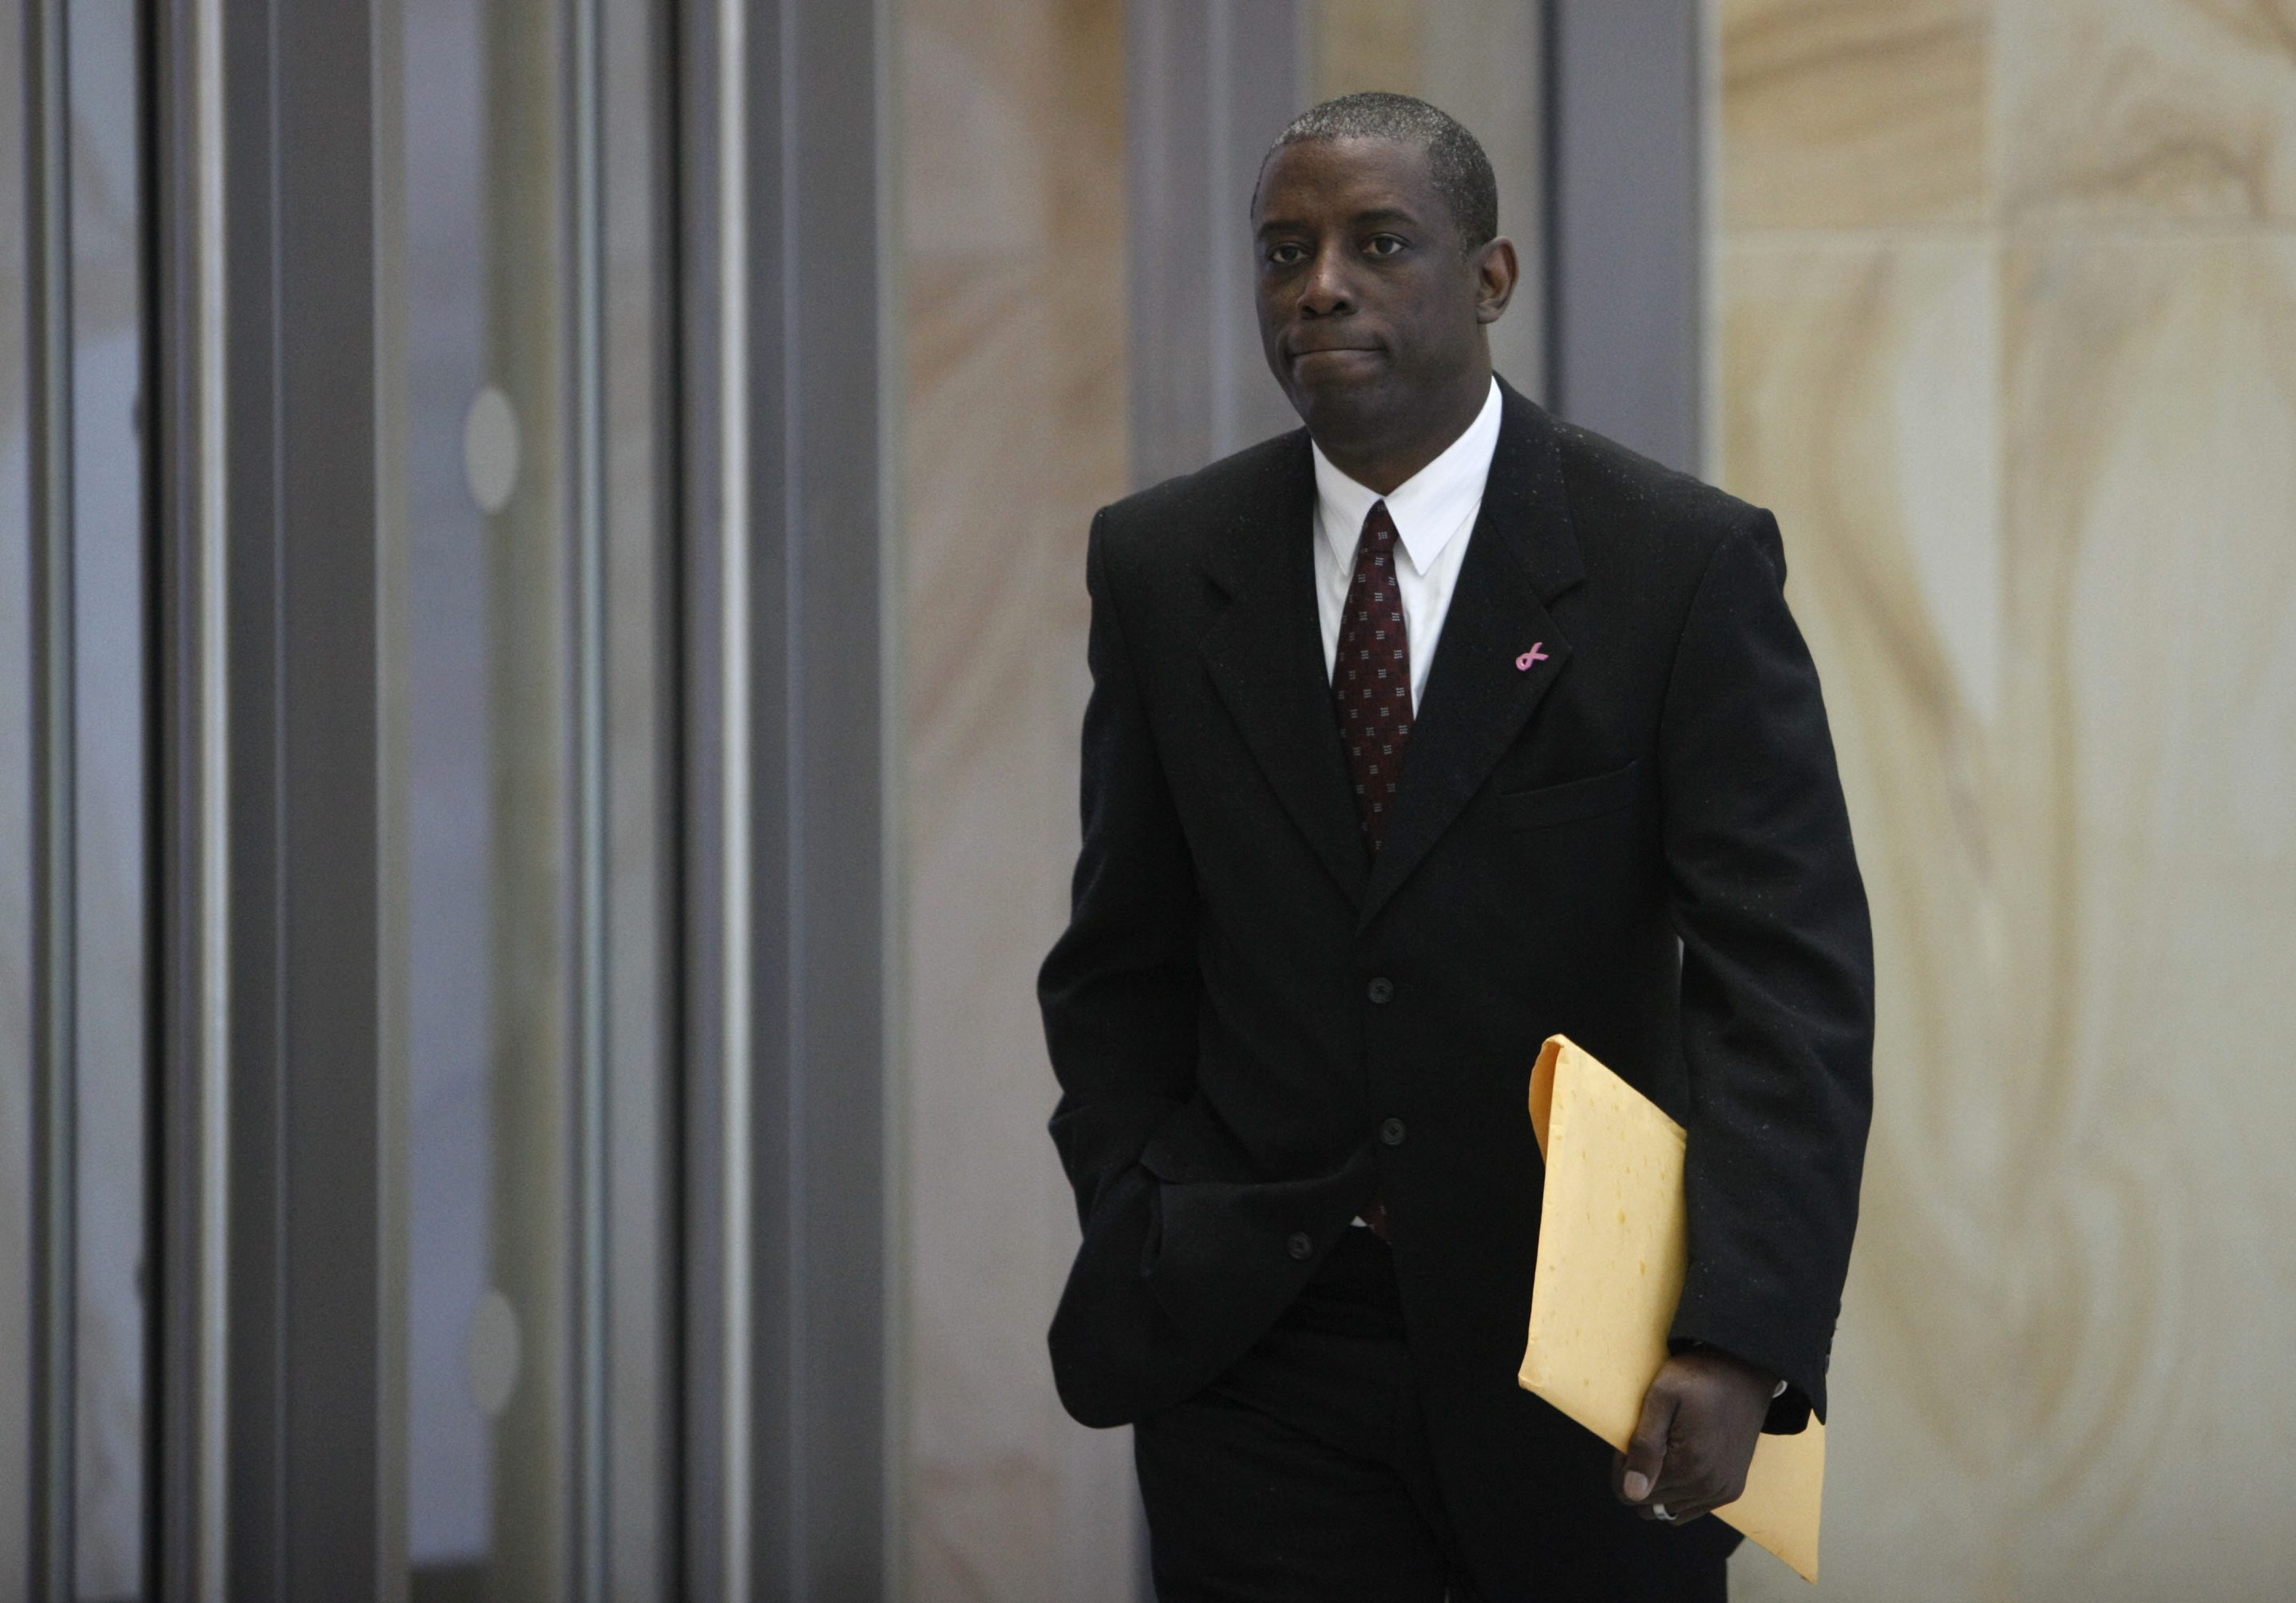 As City of Buffalo director of strategic planning, Timothy E. Wanamaker spent city anti-poverty funds lavishly, leading to a guilty plea in federal court and questions that still linger.